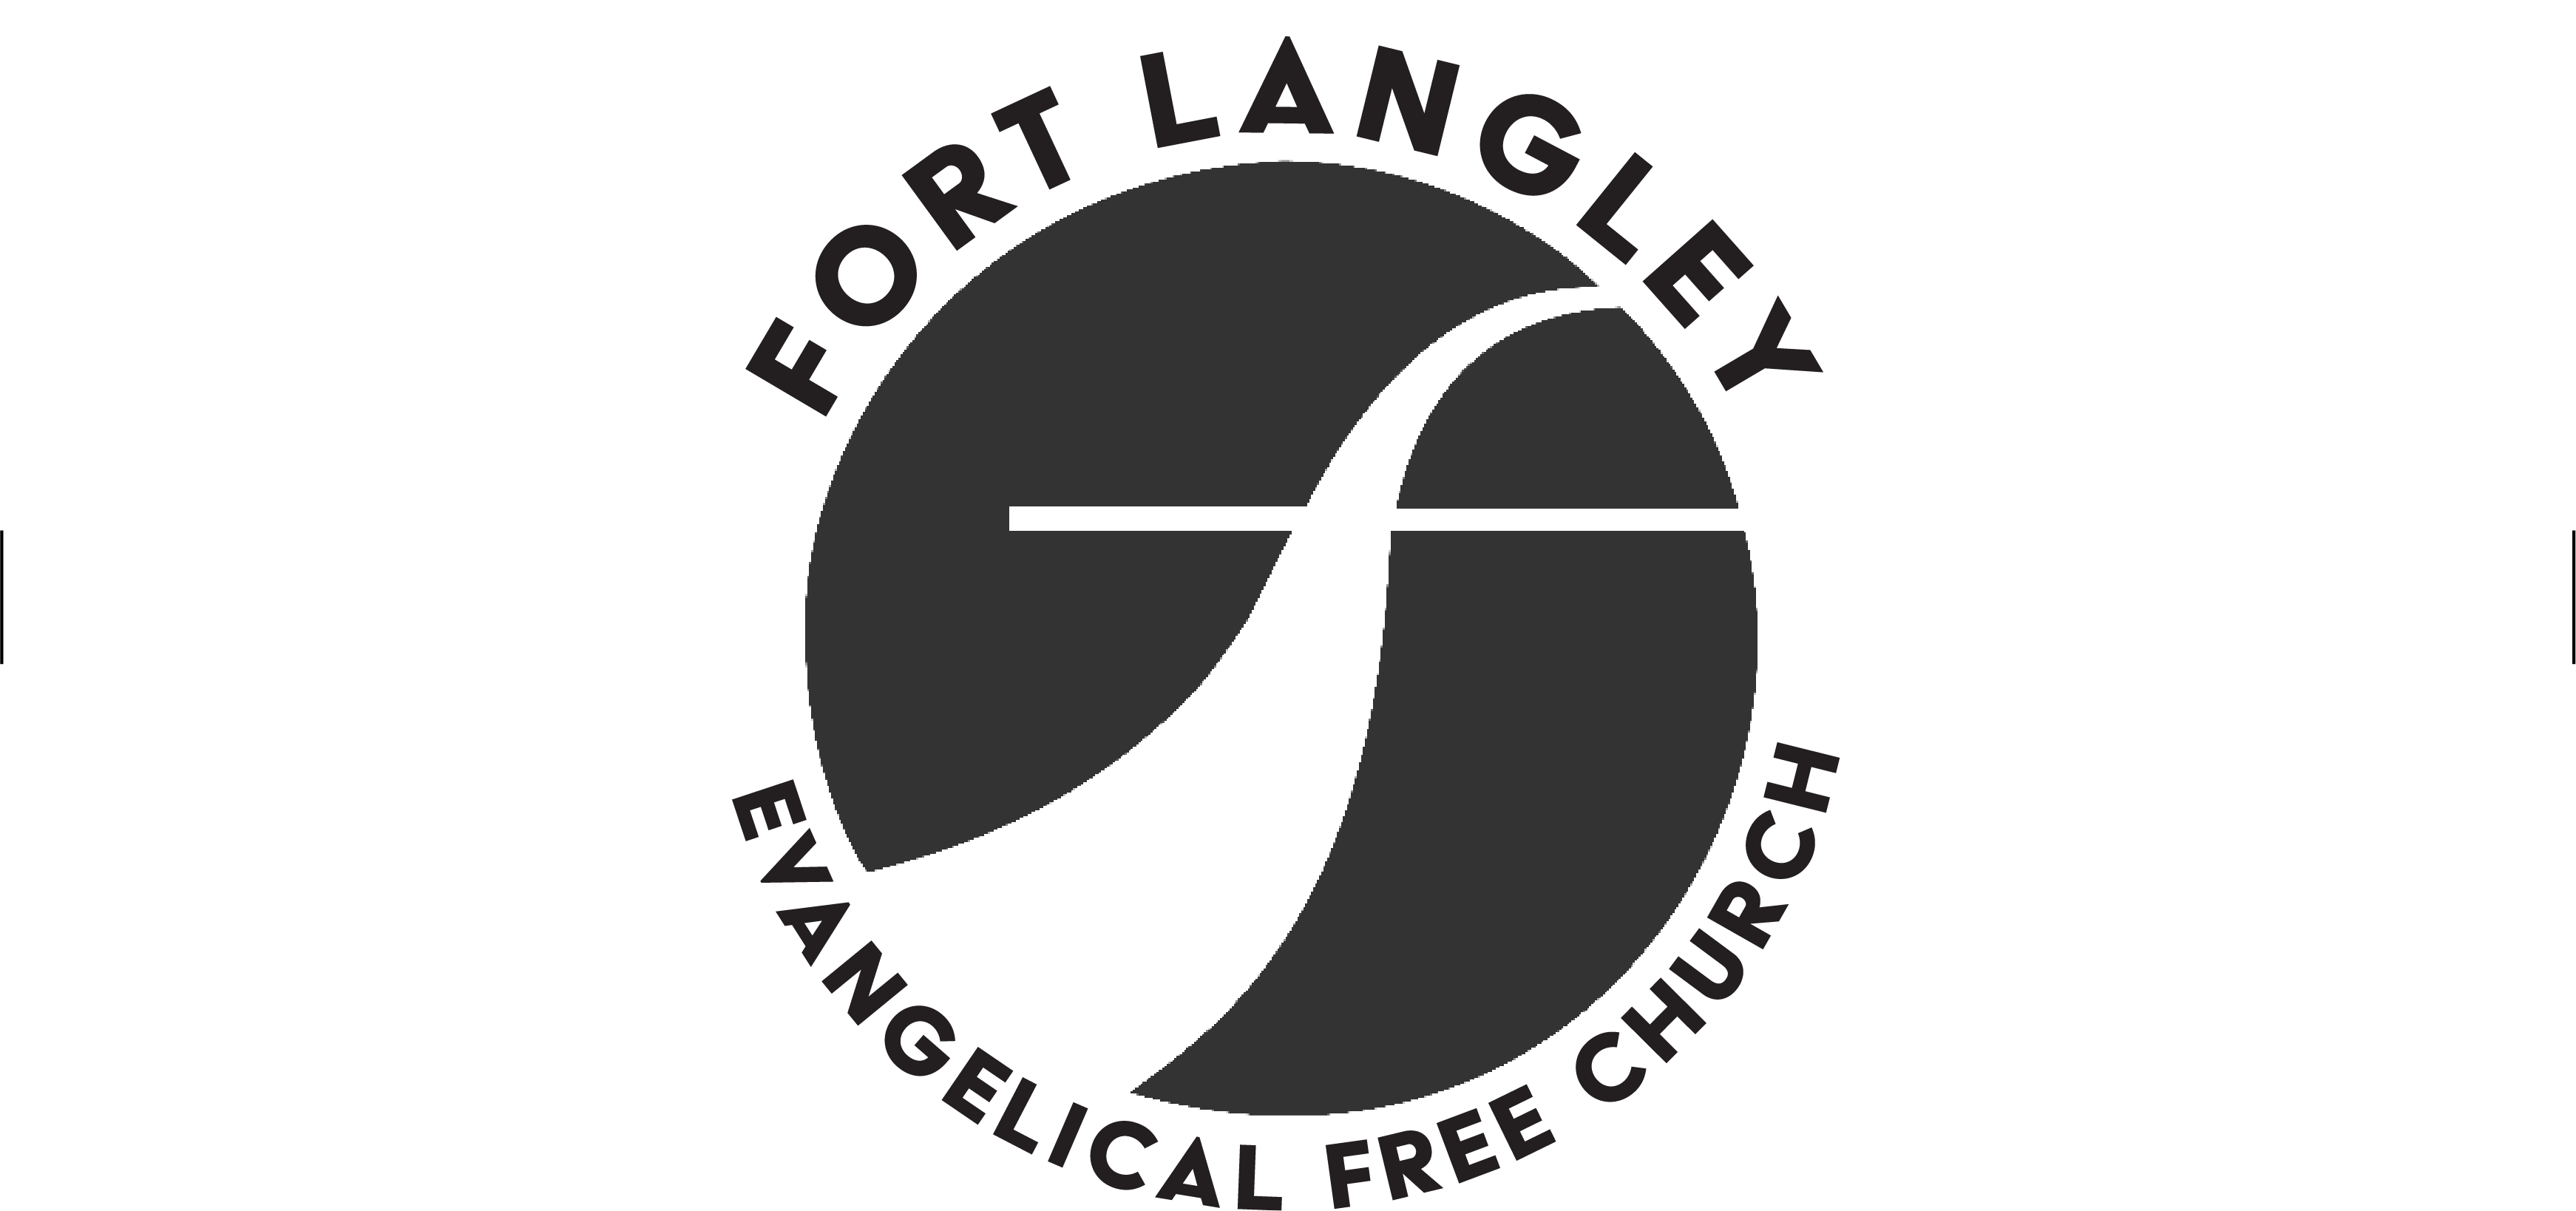 Fort Langley Evangelical Free Church